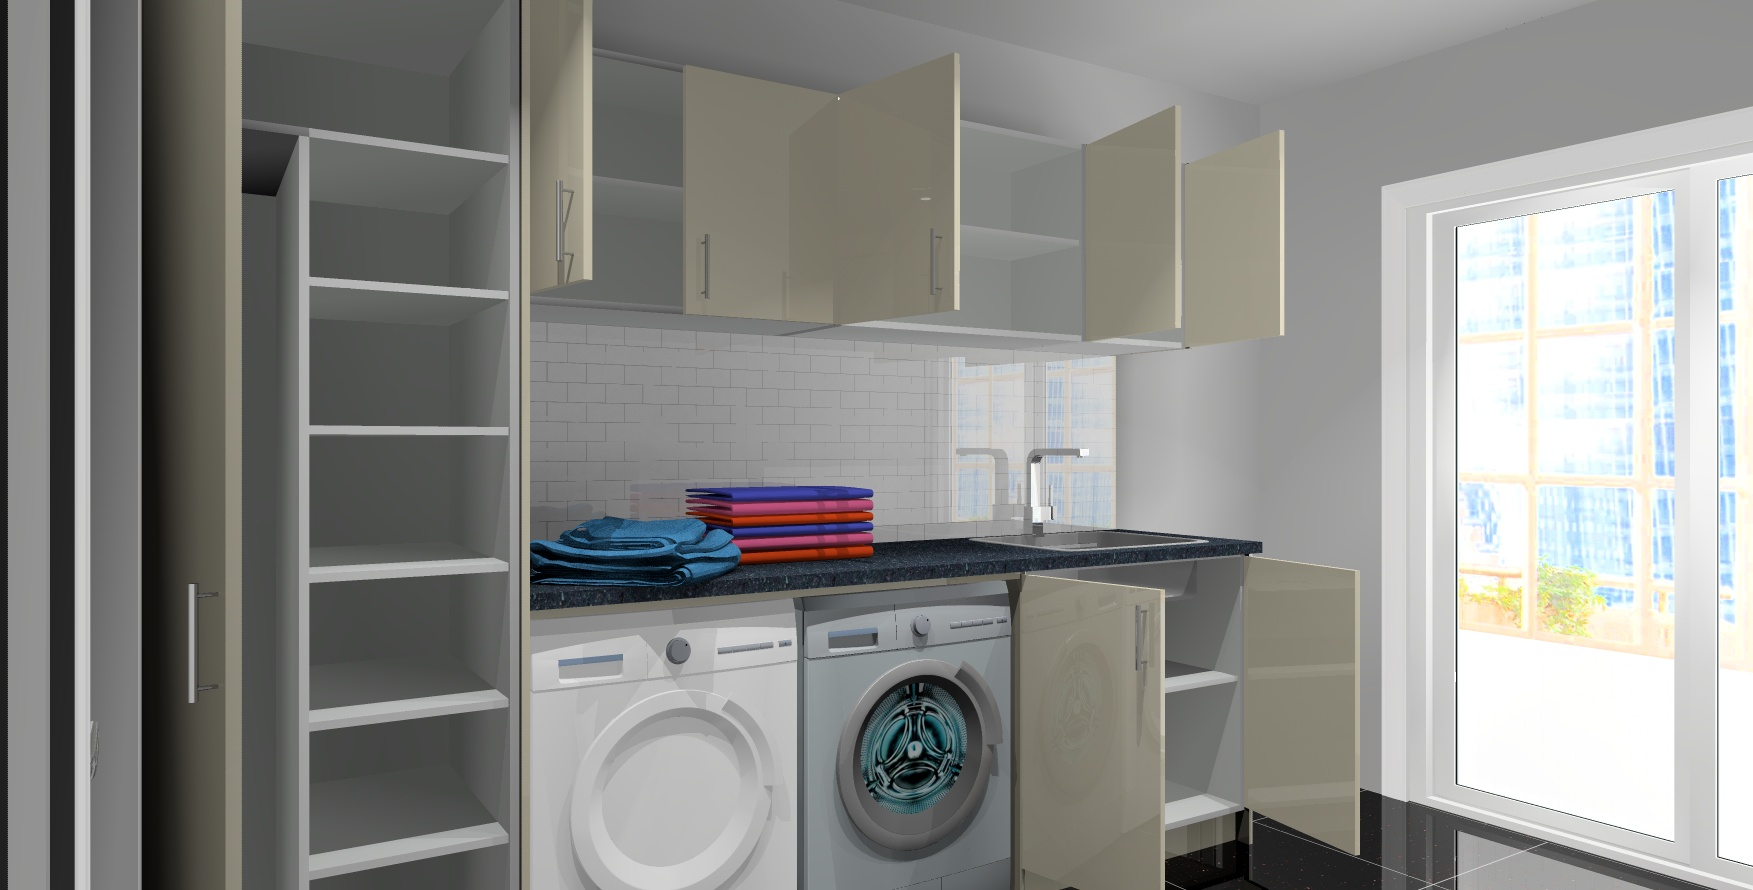 goFlatpacks Laundry cabinets solution